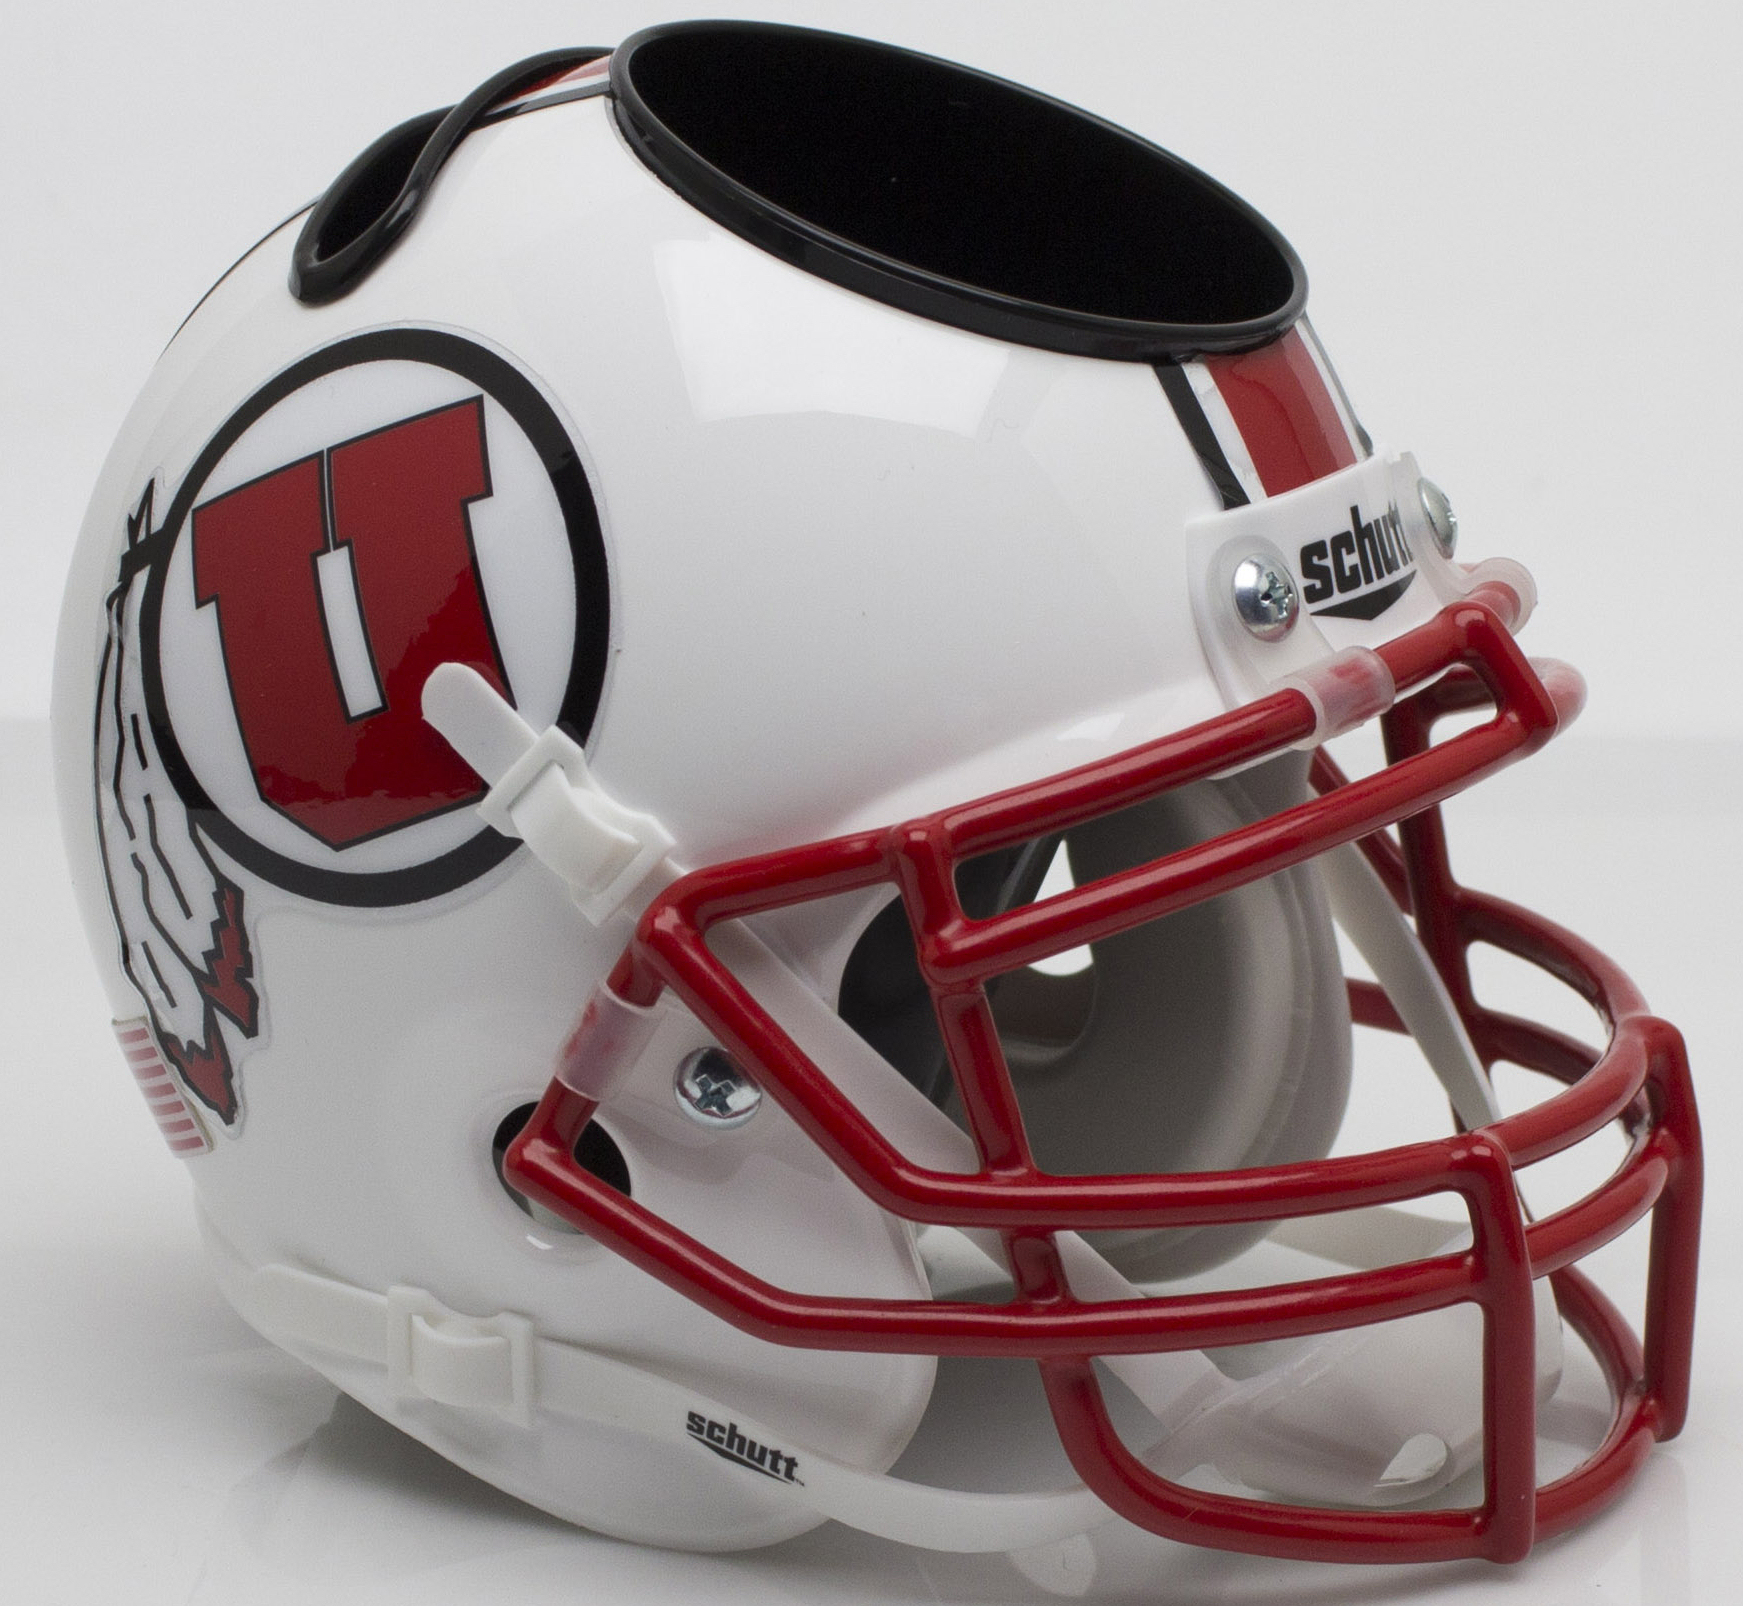 Utah Utes Miniature Football Helmet Desk Caddy <B>White with Stripe</B>